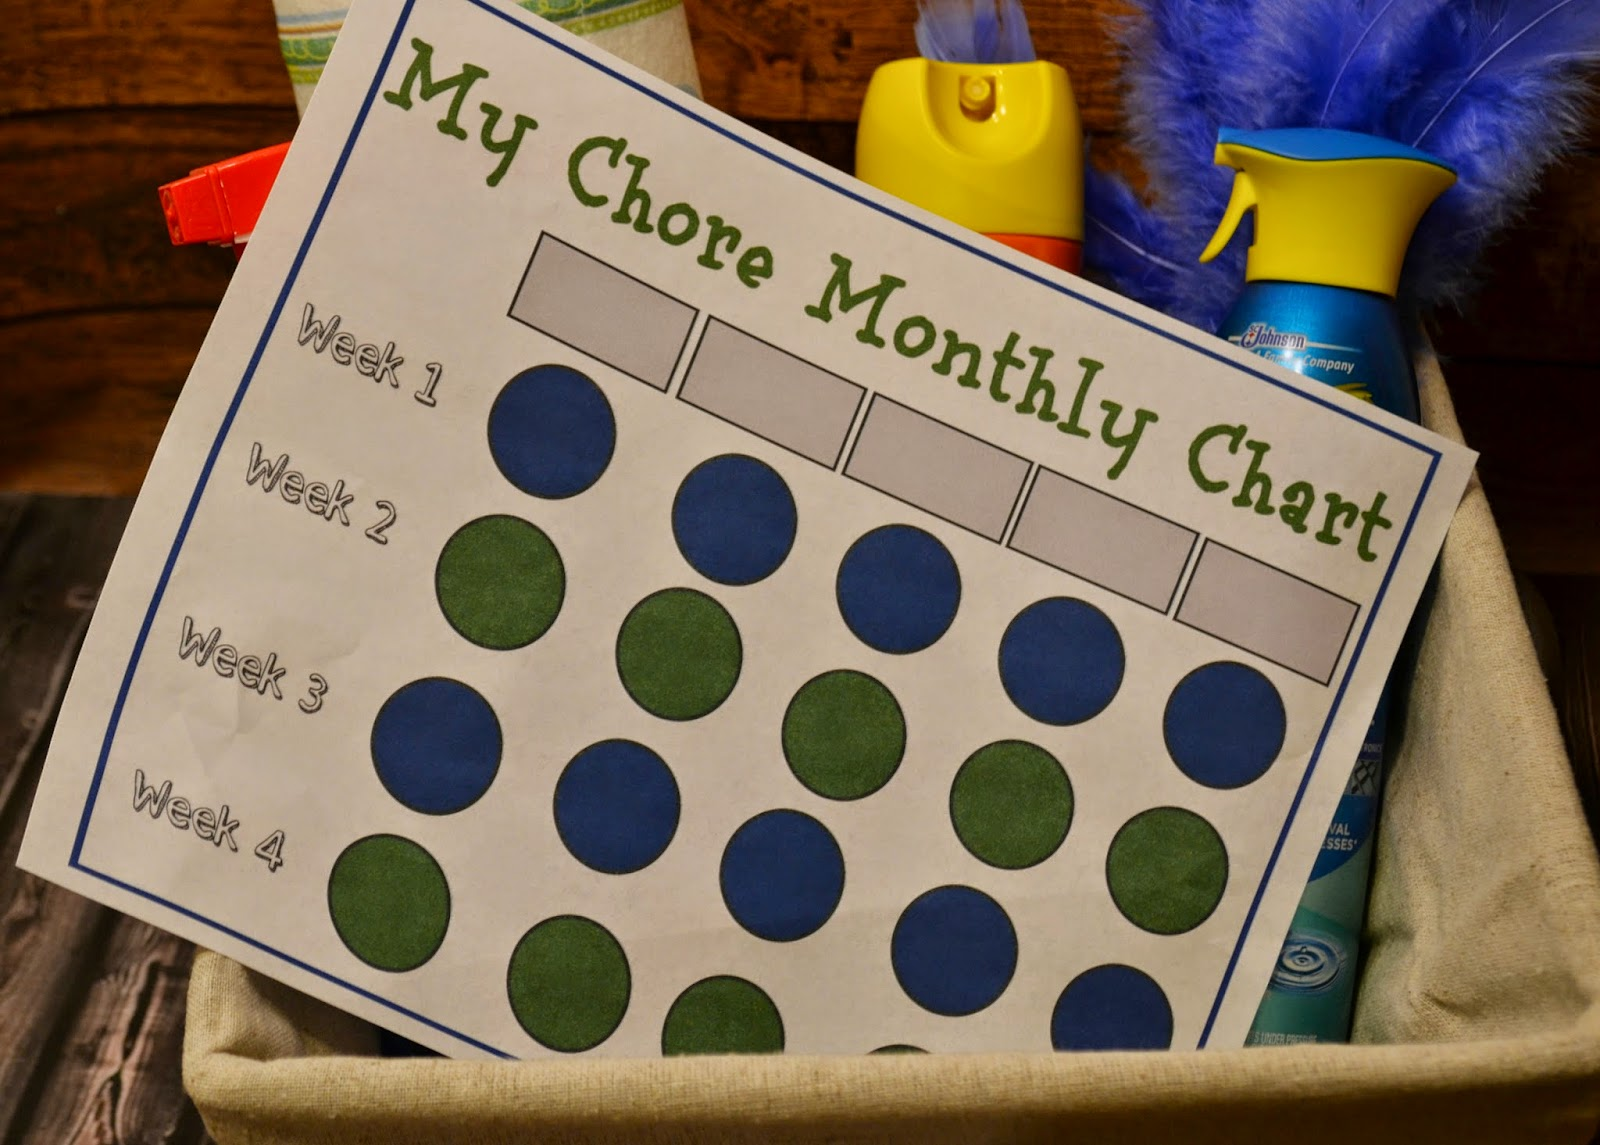 10 Minute Clean, Mommy's Little Helper, Pledge, Windex, Clean home printable chore chart by month